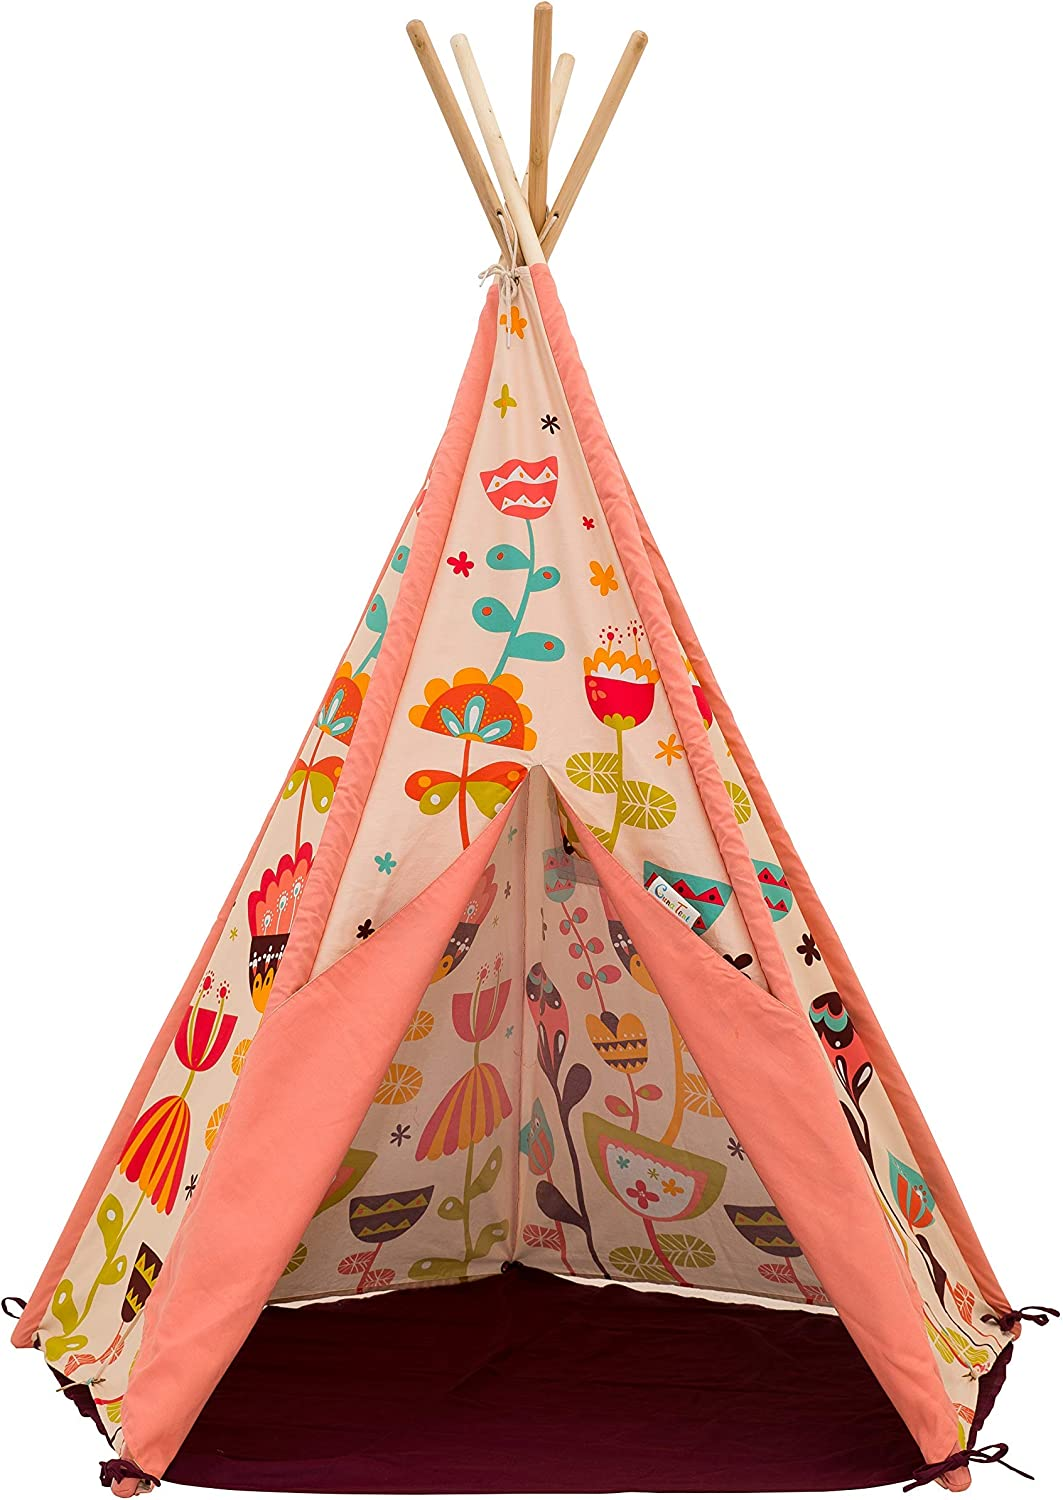 """SagePole Teepee Play Tent with Floor Mat and Solid Pine Poles, 59"""" x 51"""", Sweet Garden"""